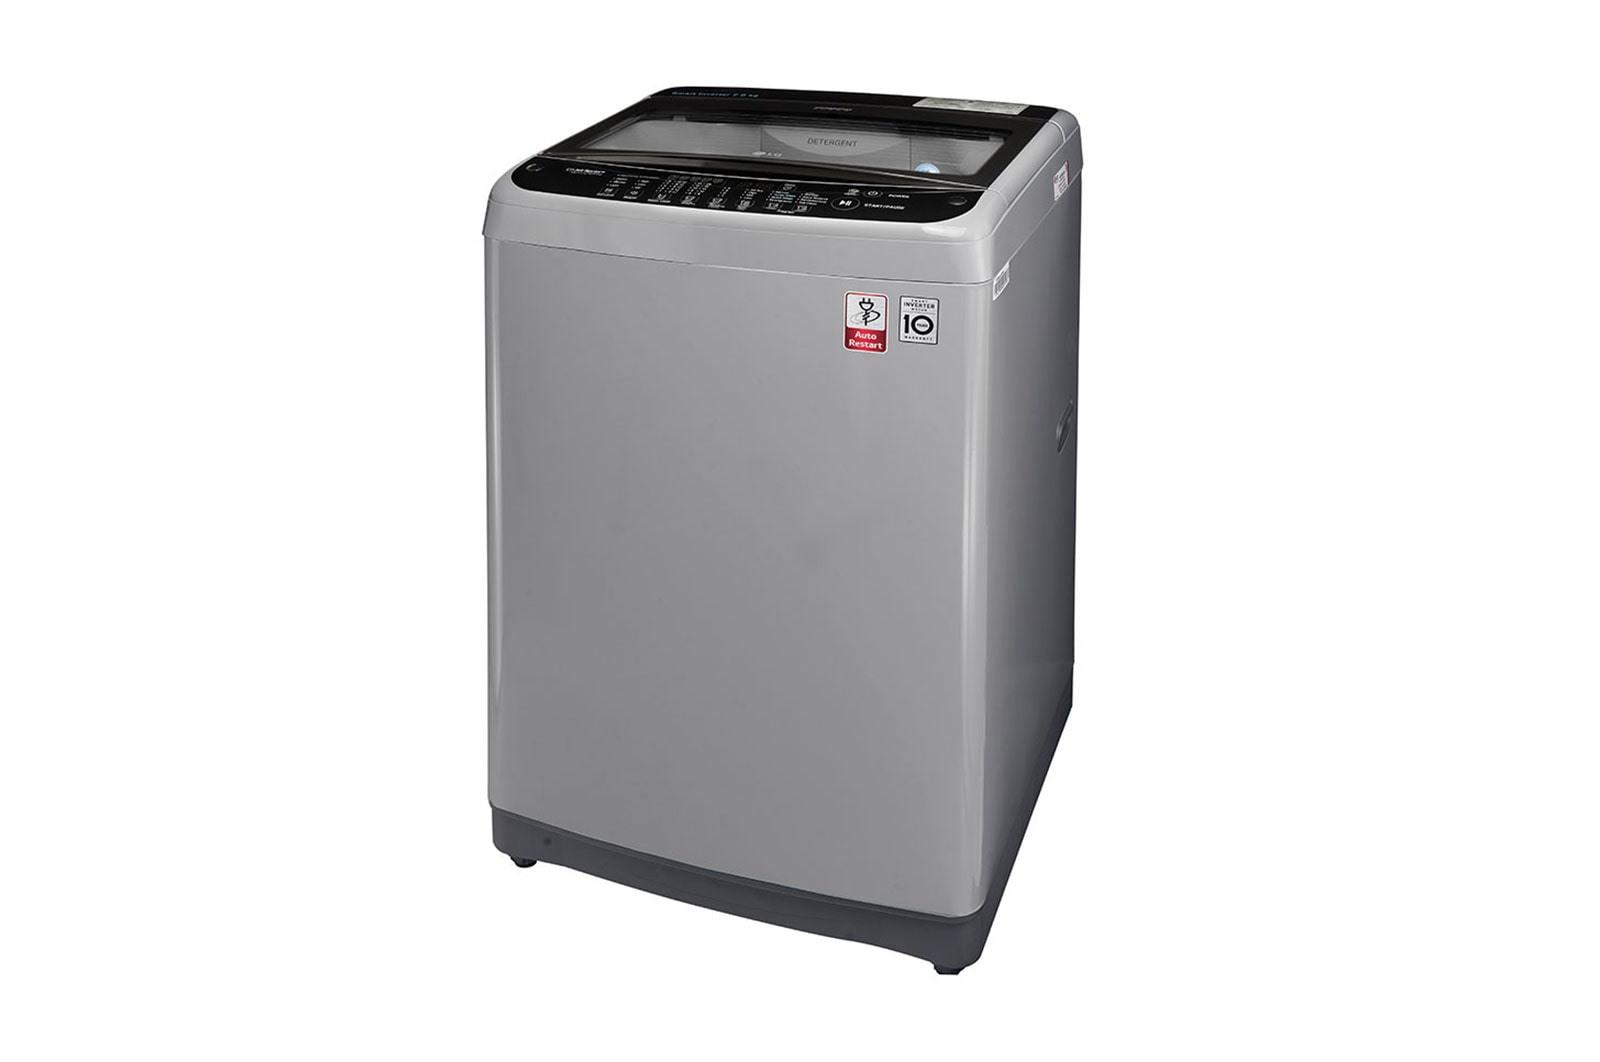 lg t8077nedlj 7 0kg top load fully automatic washer with smart diagnosis™ |  lg in